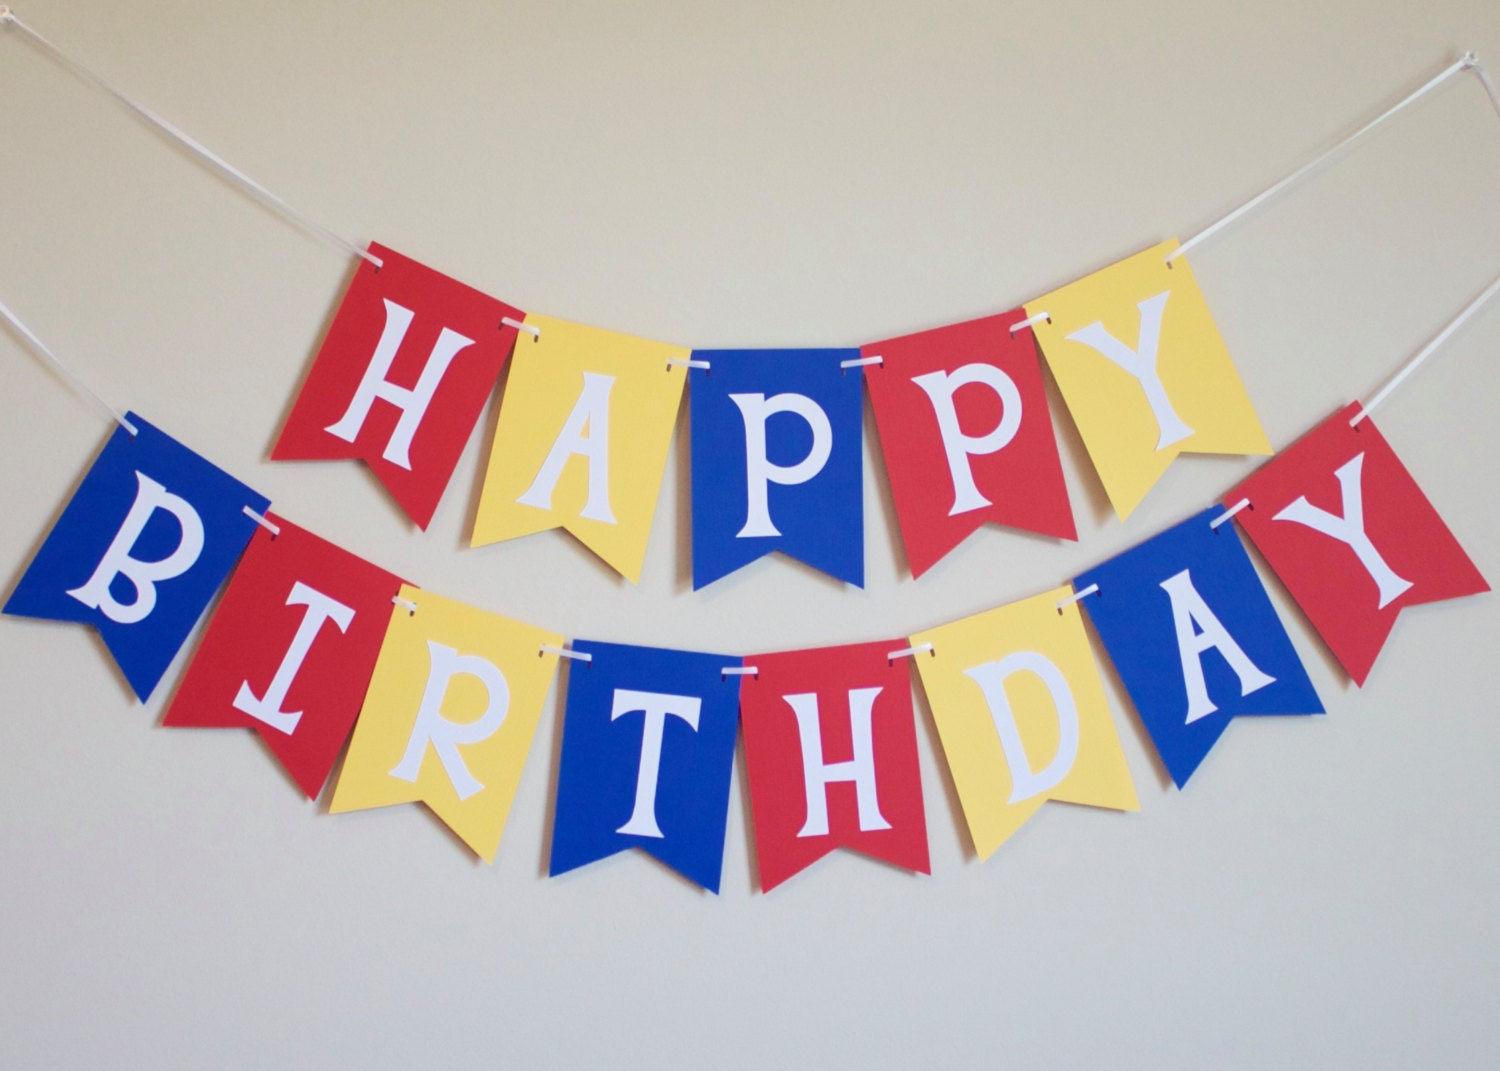 happy birthday banner in red yellow and blue by